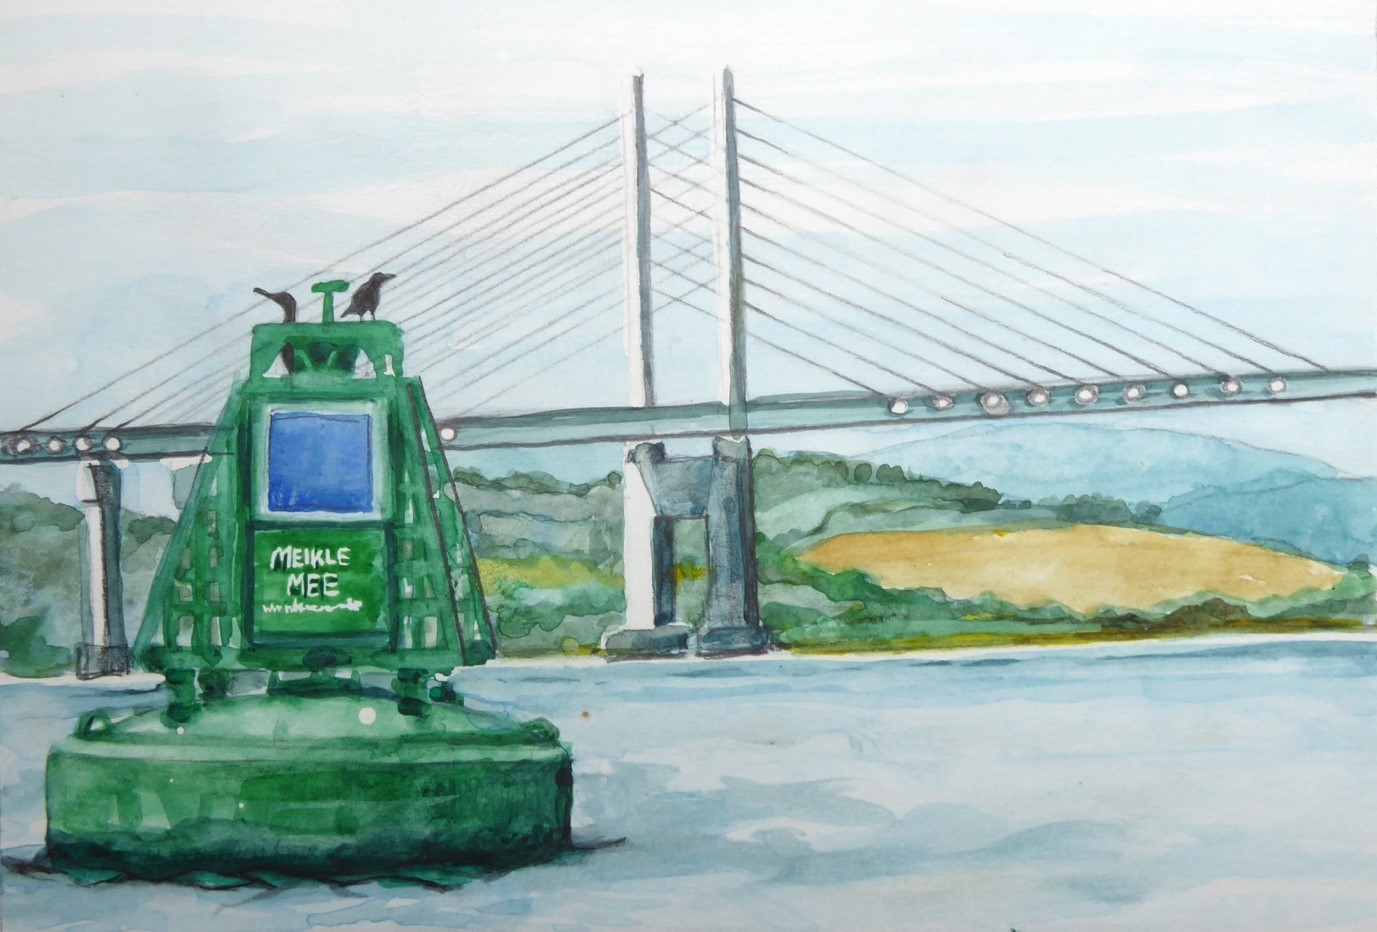 A painting of a large green buoy positioned in the sea in front of a large, modern road bridge